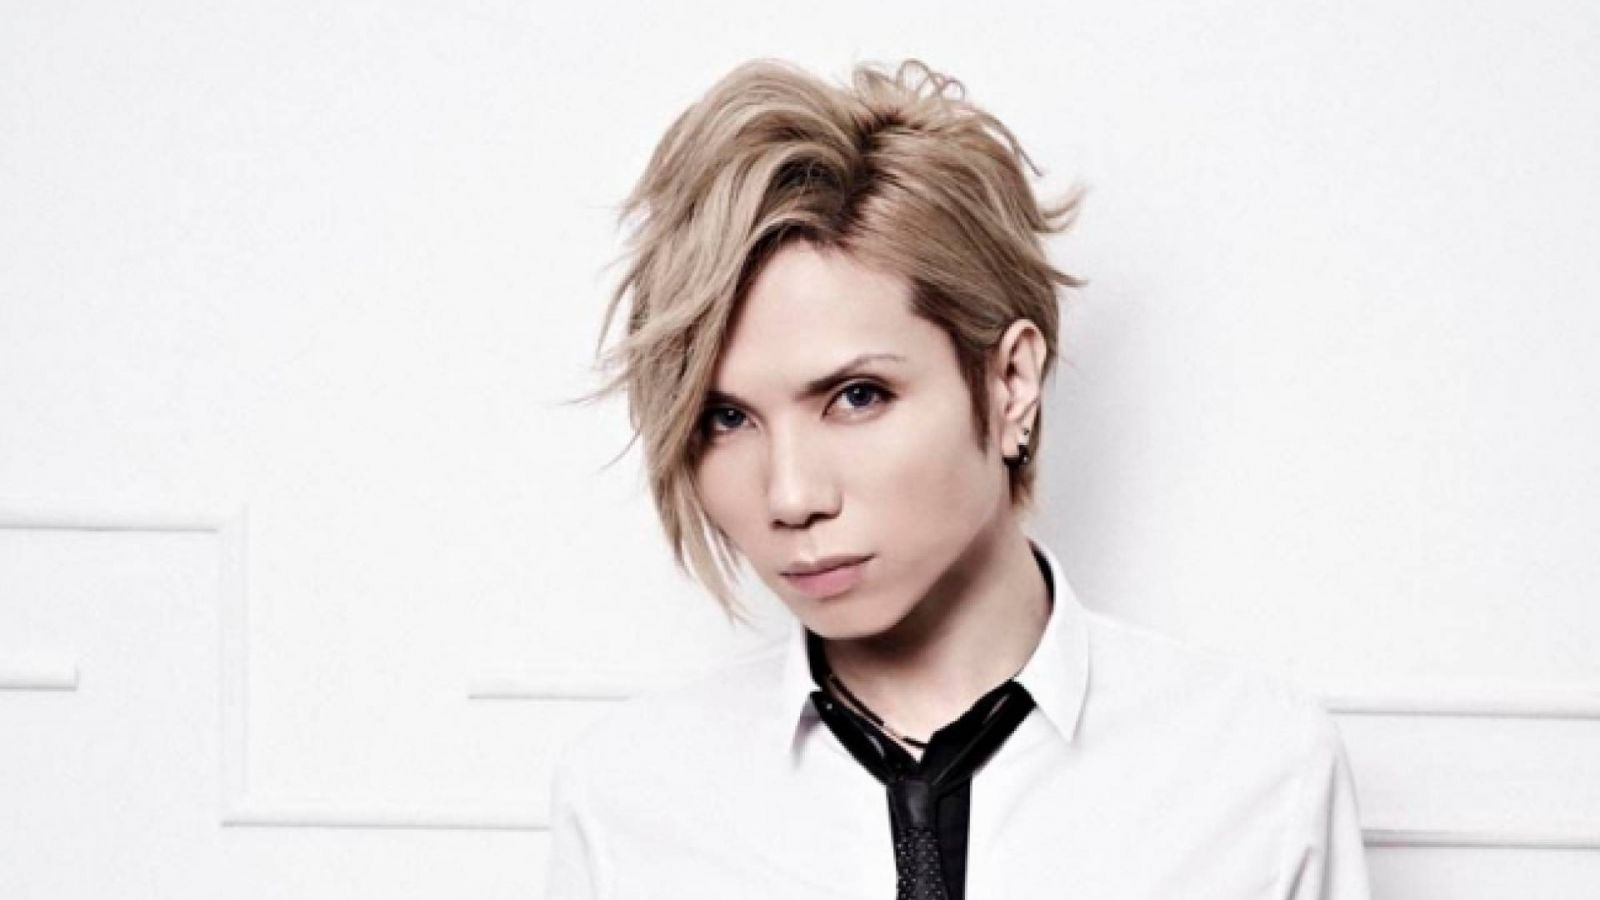 Поздравляем с праздниками: acid black cherry © Avex Entertainment Inc. / Up-rise Inc.